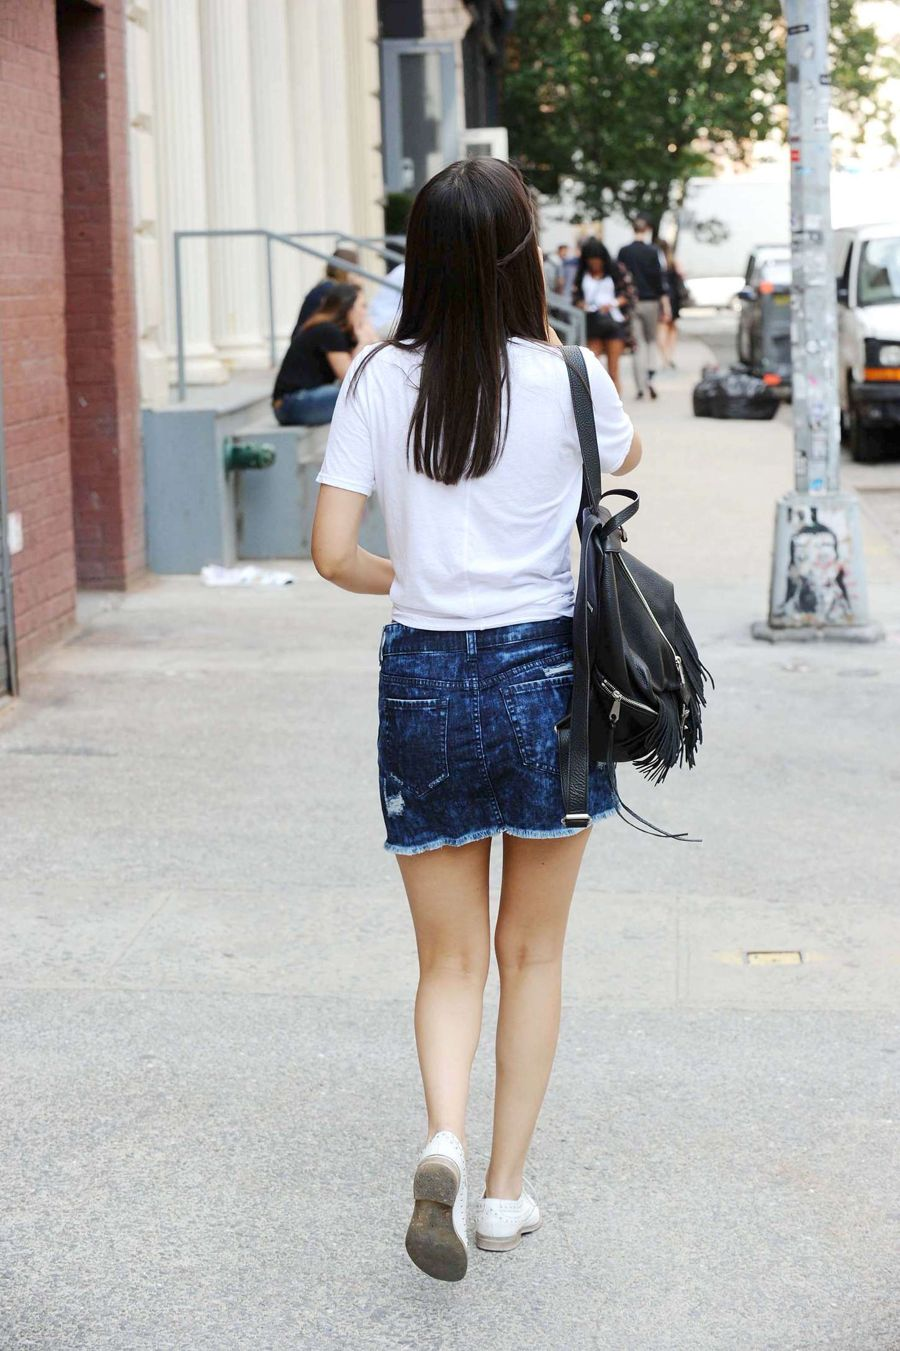 Victoria Justice looks Sassy in Blue Mini Skirt